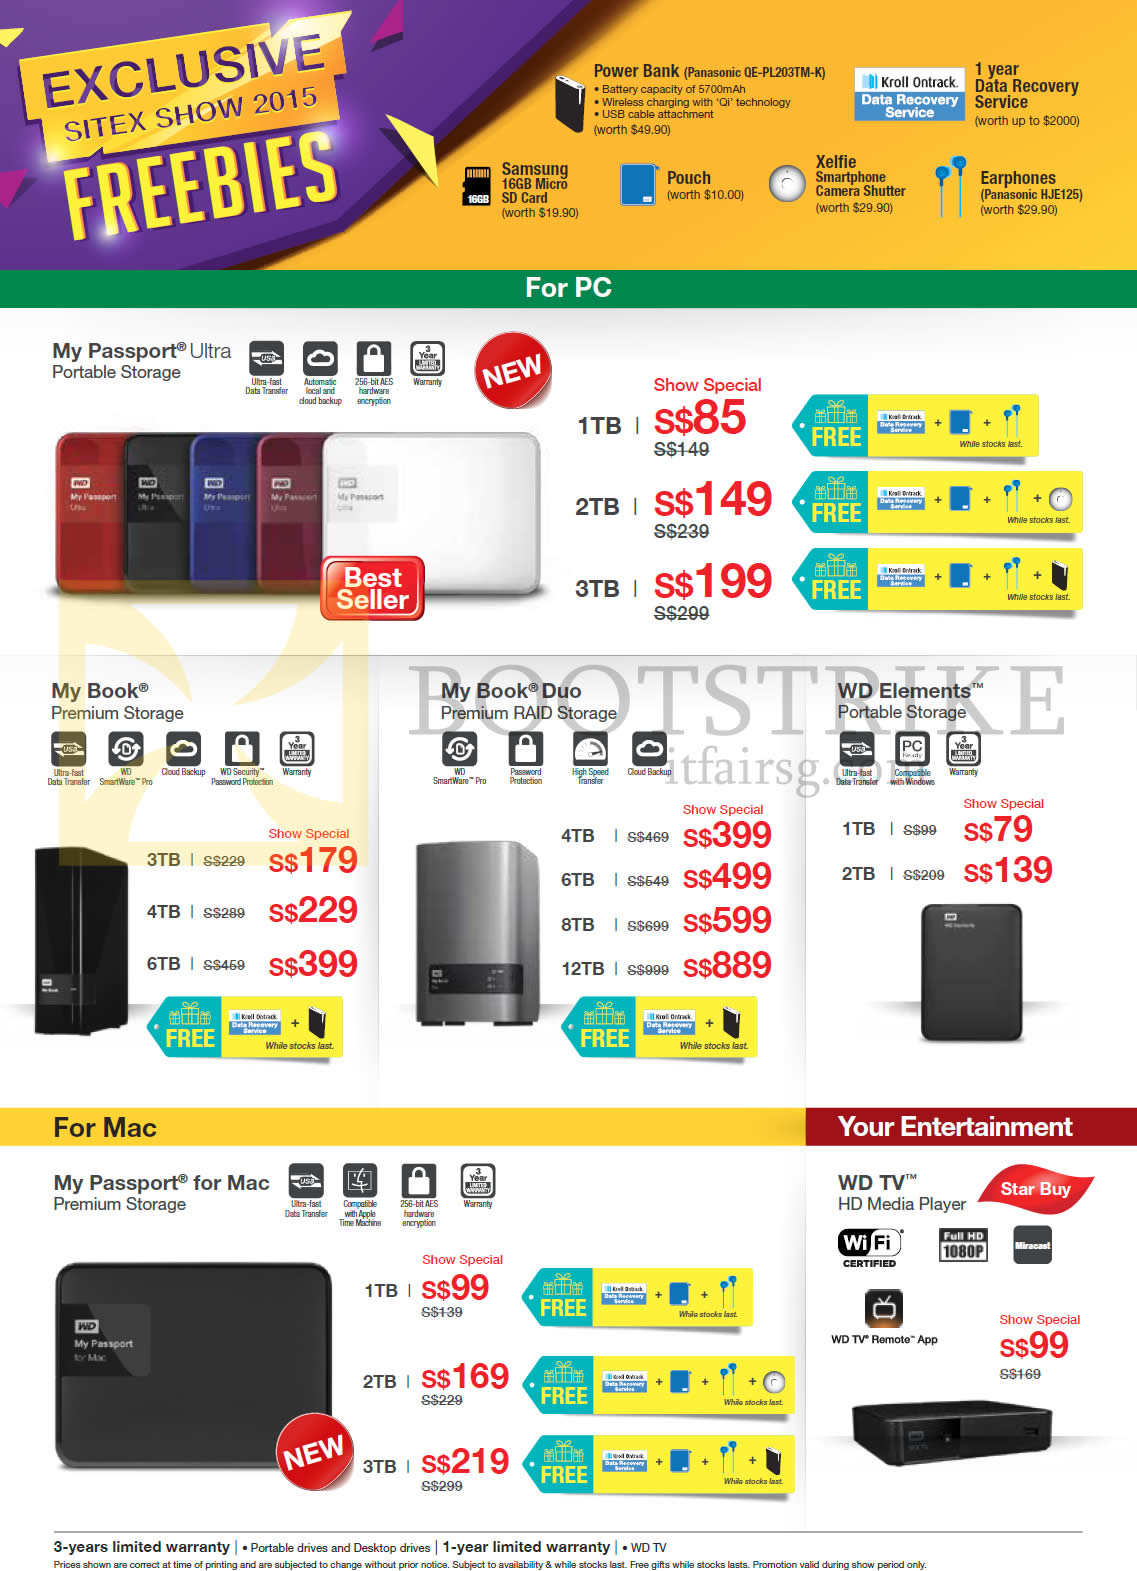 SITEX 2015 price list image brochure of Western Digital Storage Solutions, My Passport Ultra, My Book Premium Storage, My Book Duo, WD Elements, My Passport For Mac, WD TV, 1TB, 2TB, 3TB, 4TB, 6TB, 8TB, 12TB